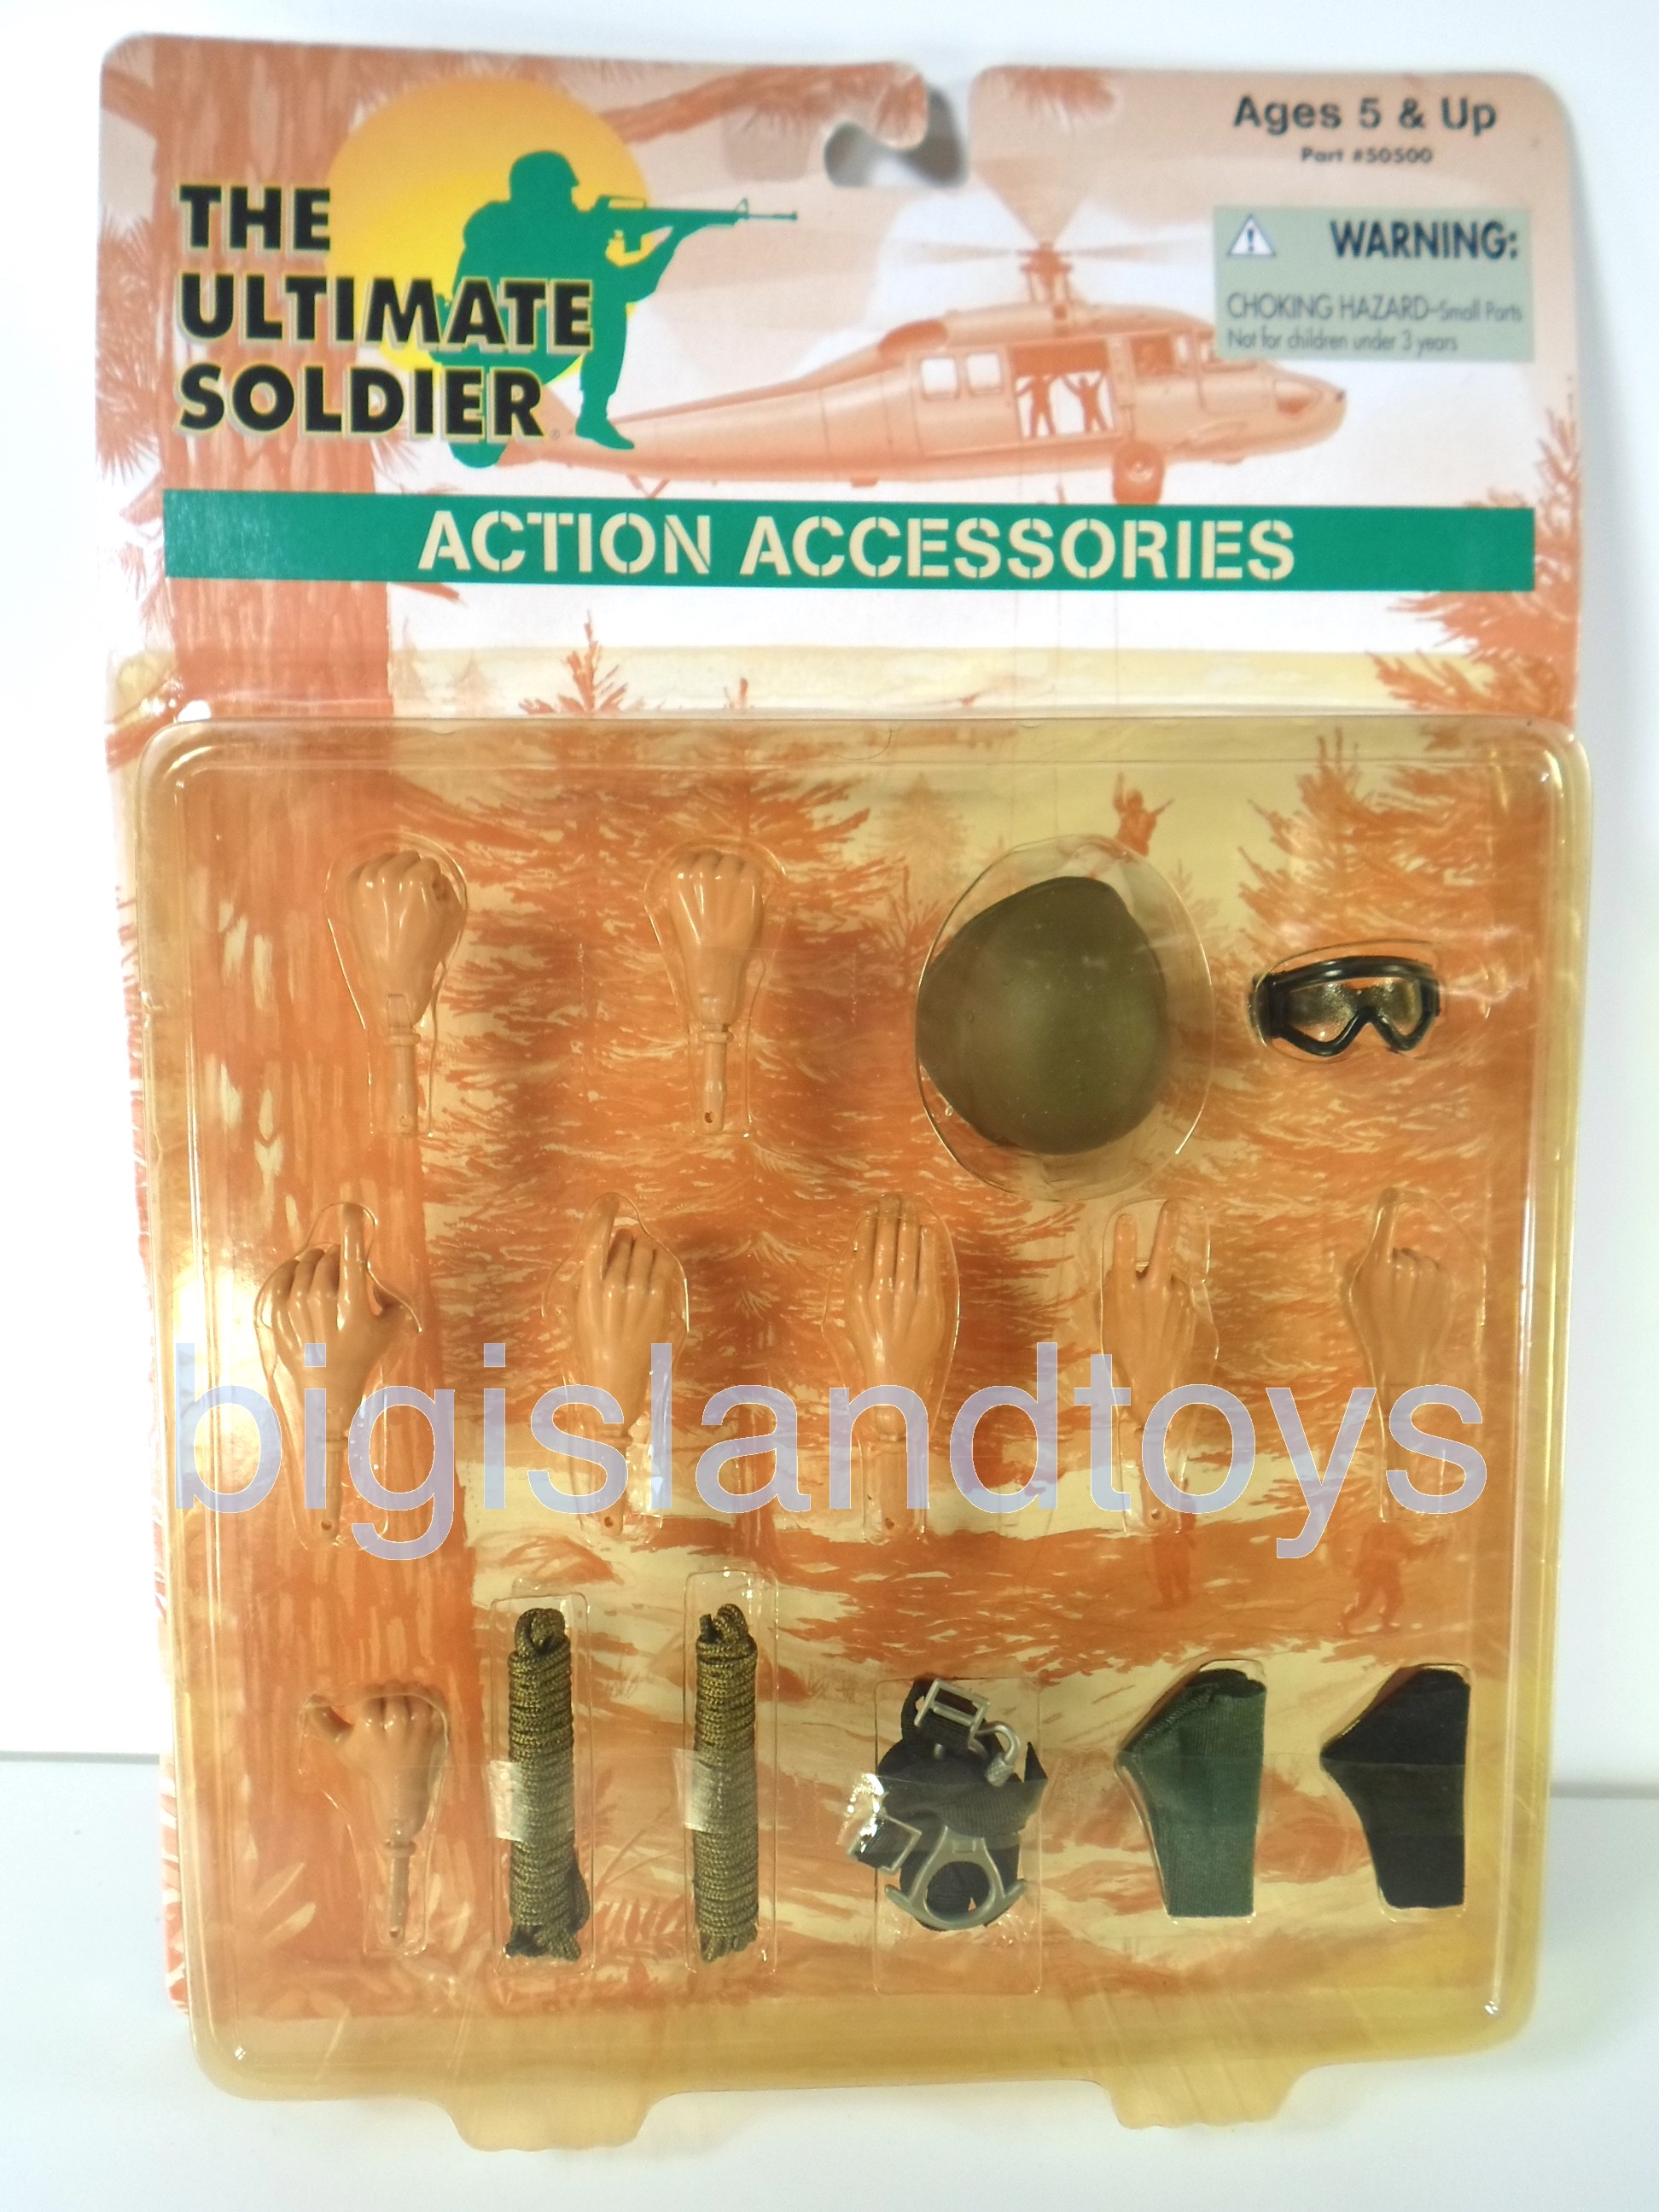 The Ultimate Soldier     Action Accessories